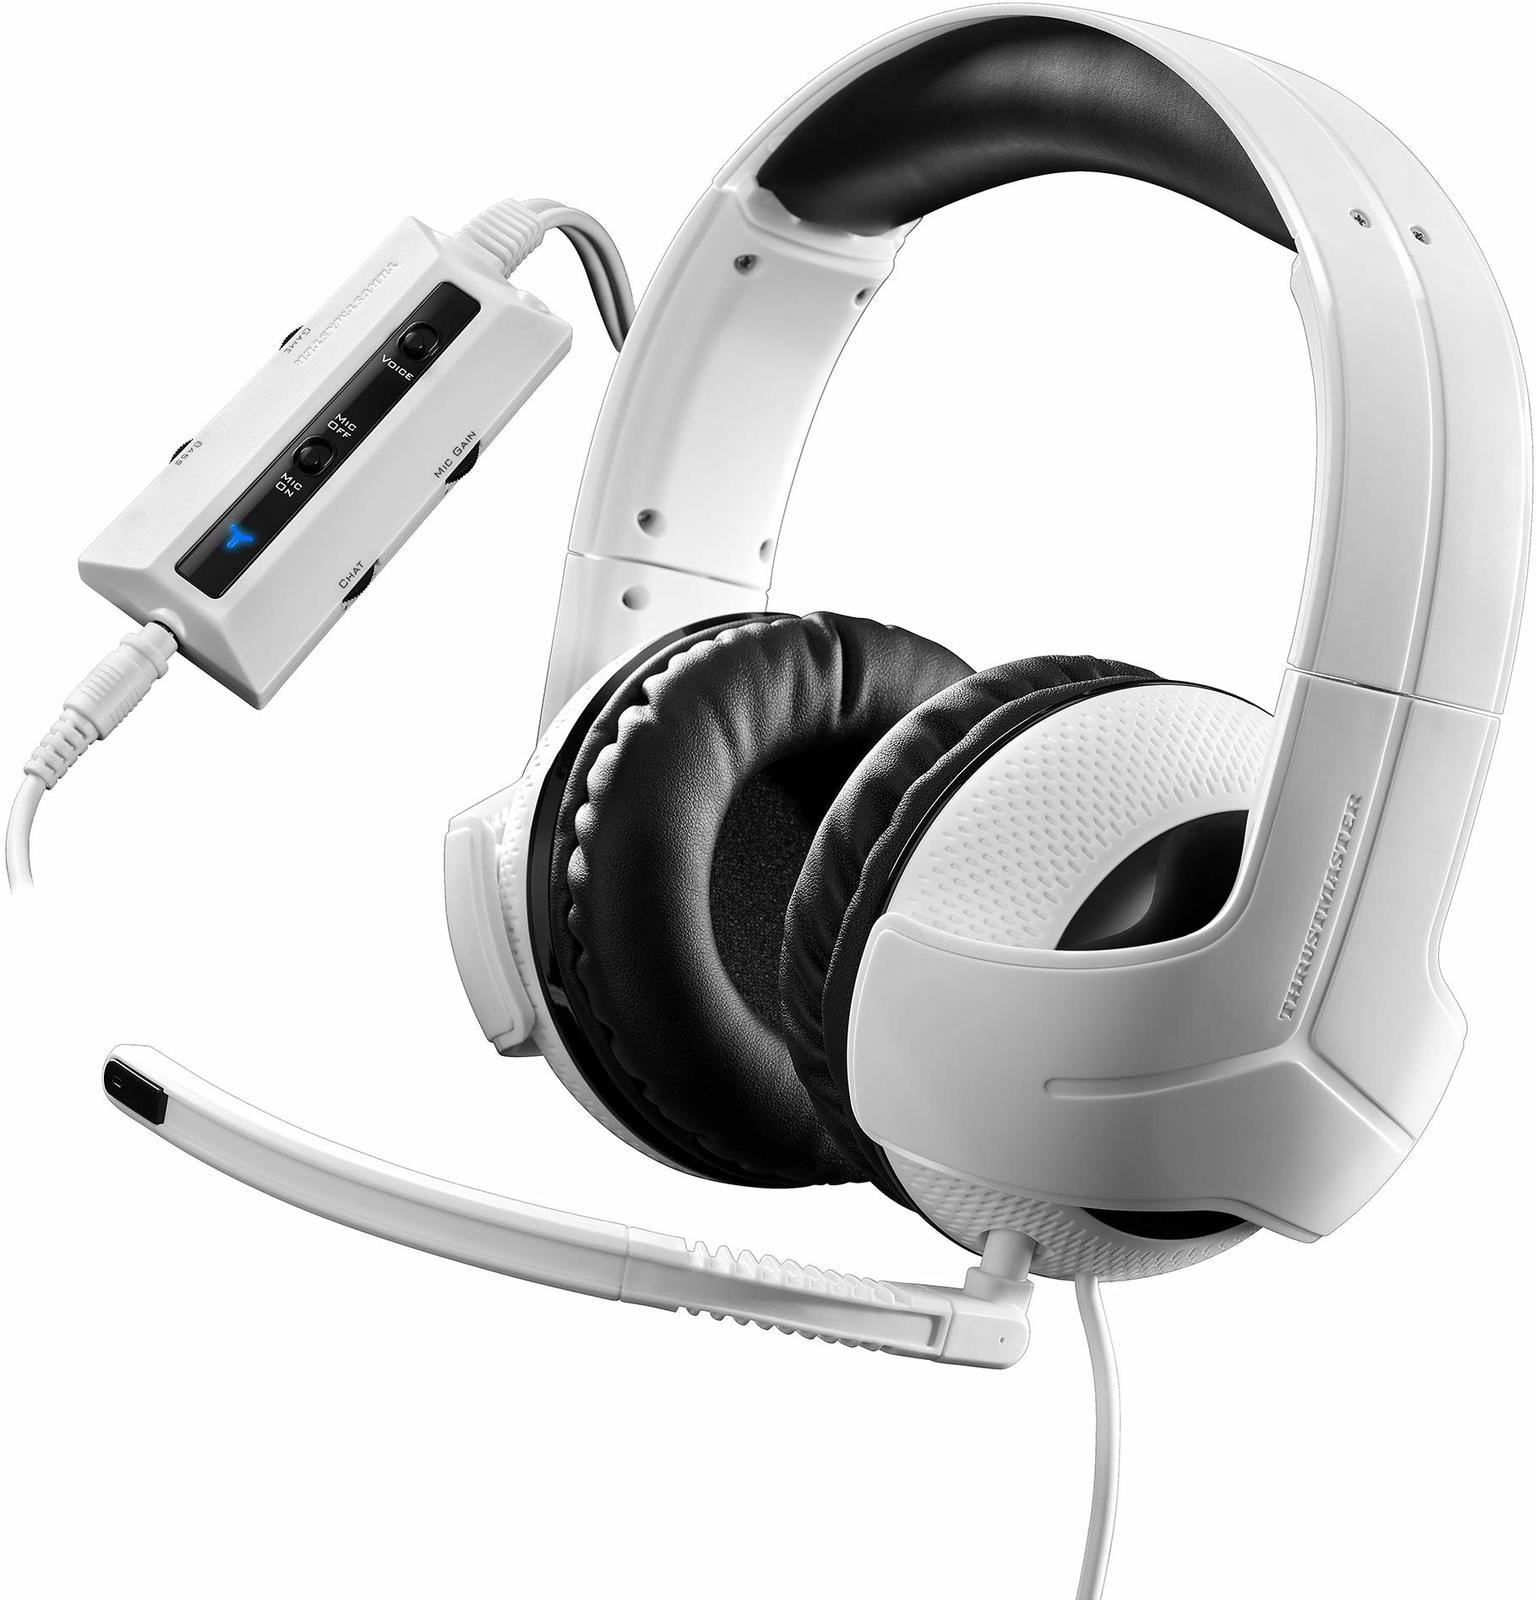 Thrustmaster Y-300CPX Gaming Headset (Wired) - Xbox One